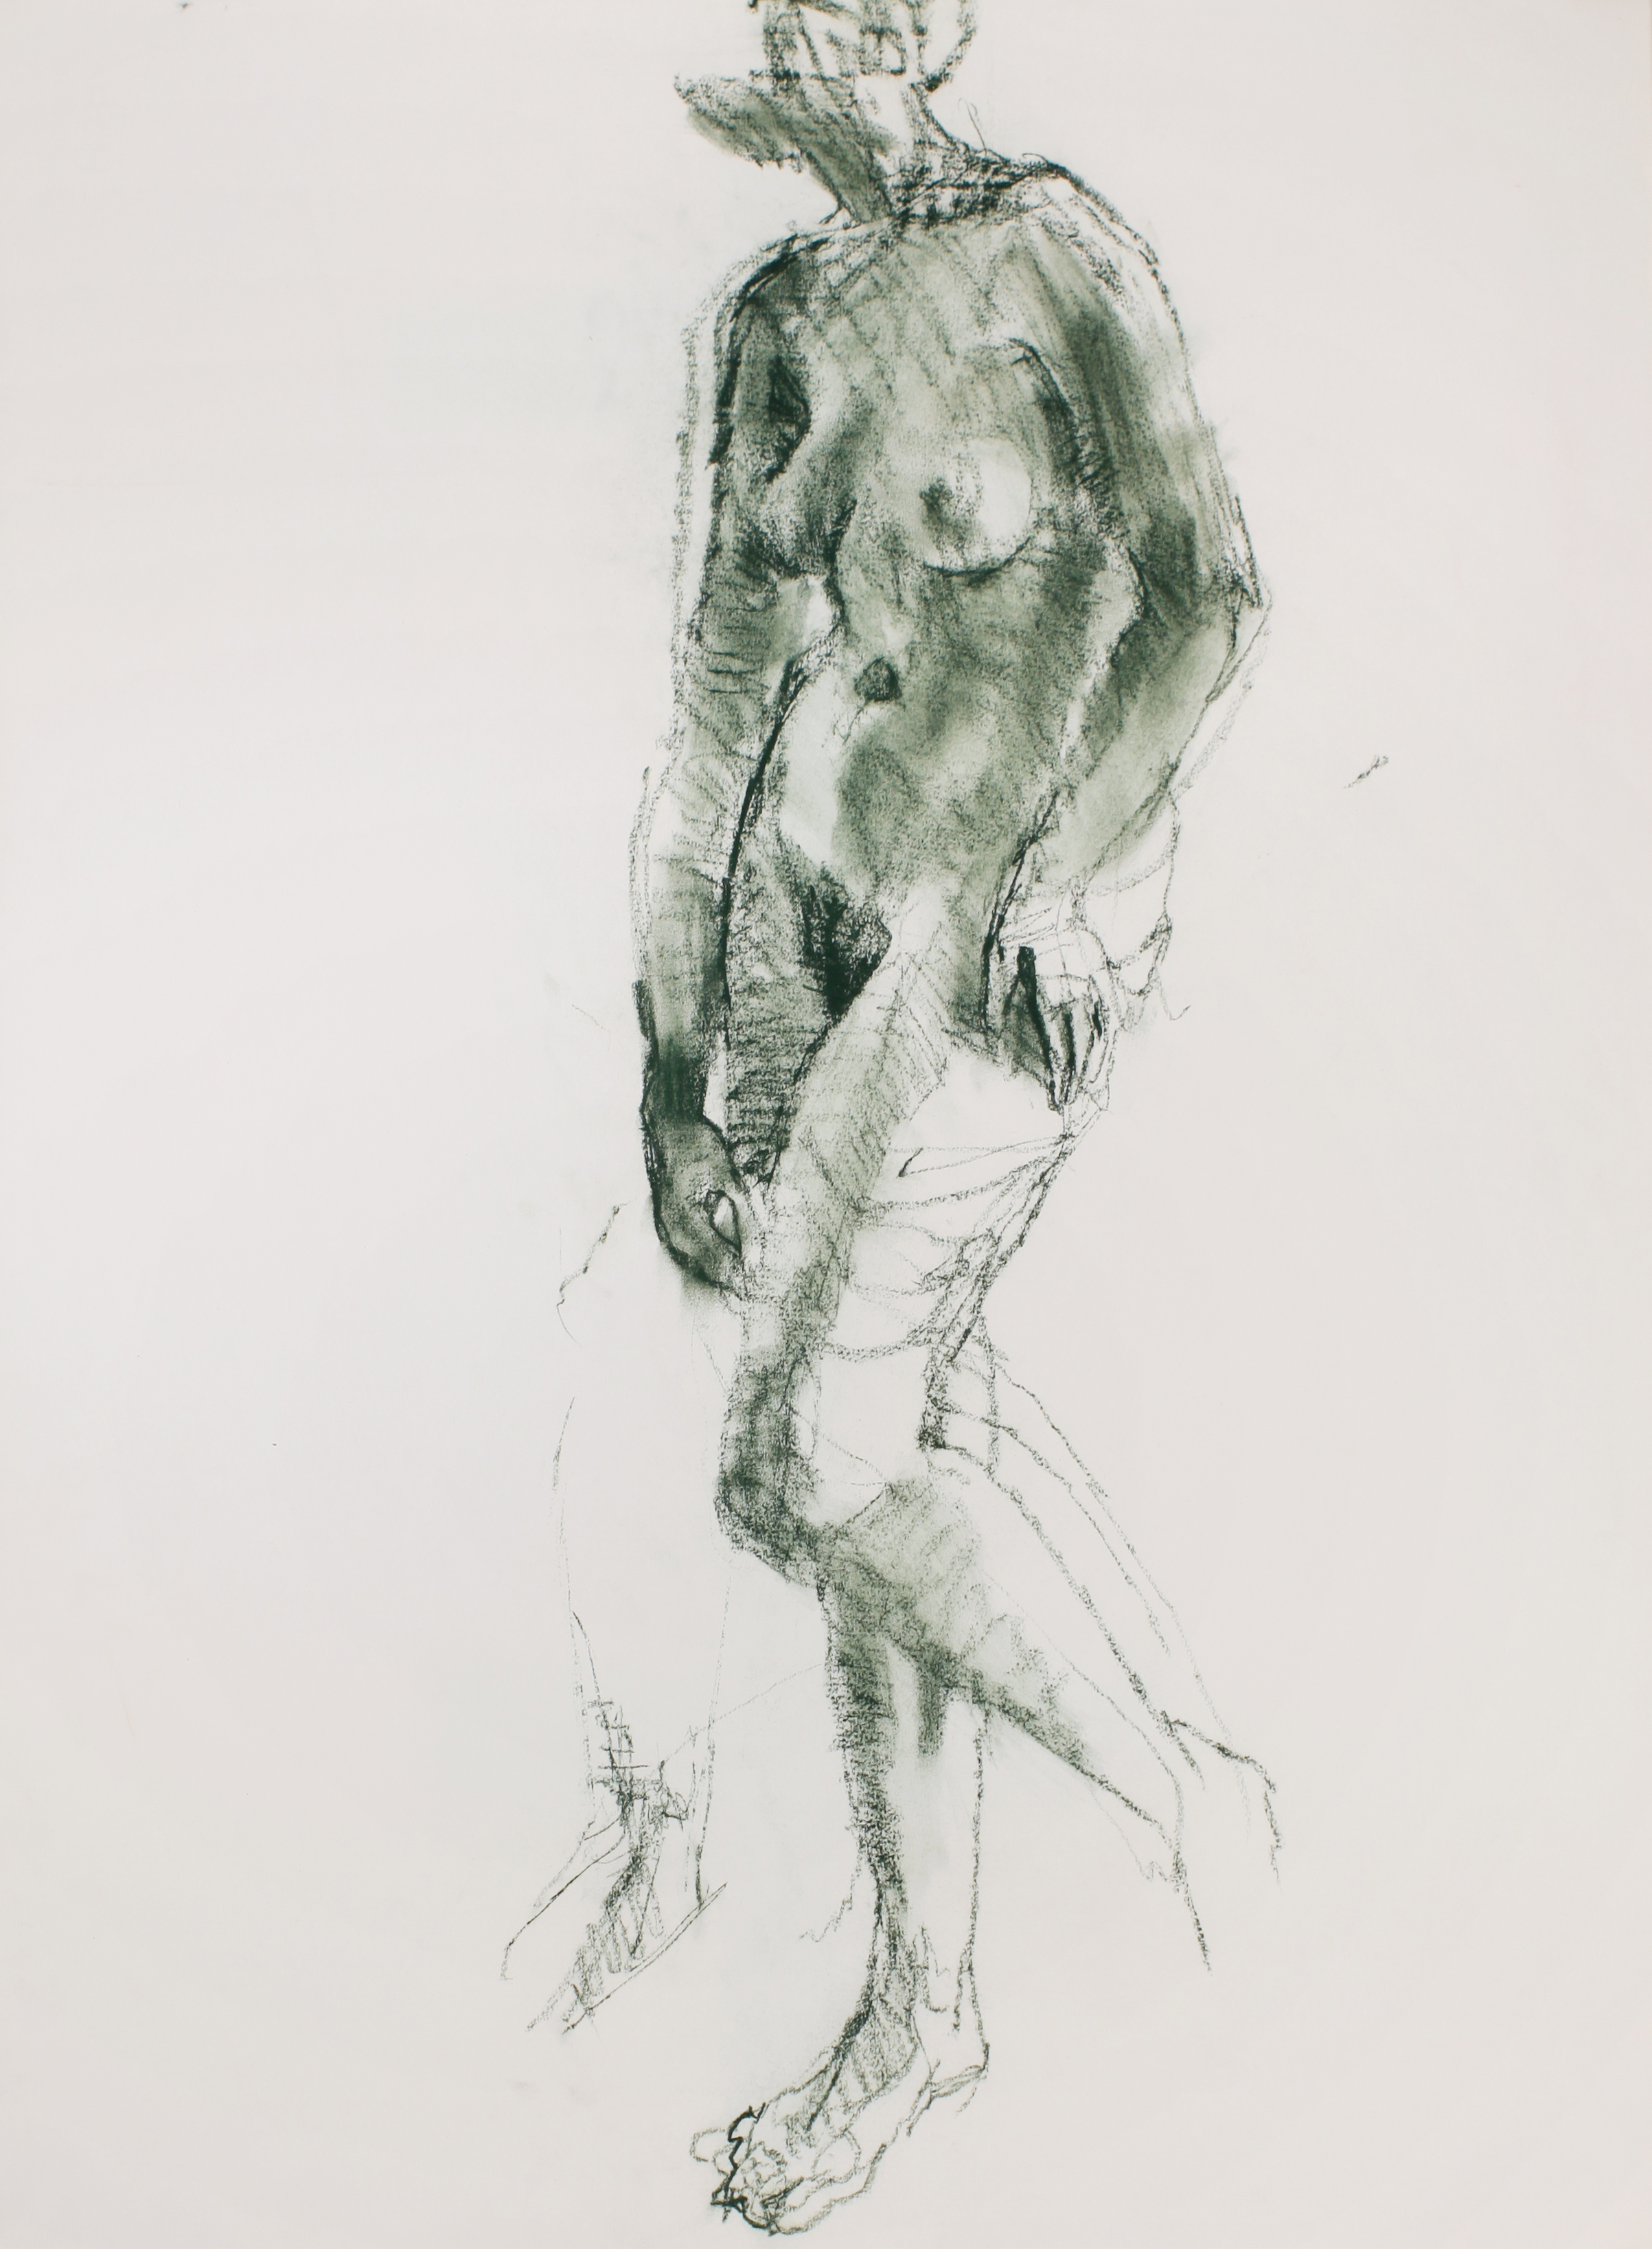 1990s_Standing_Nude_(Green)_green_pastel_on_paper_30x22in_WPF460.jpg